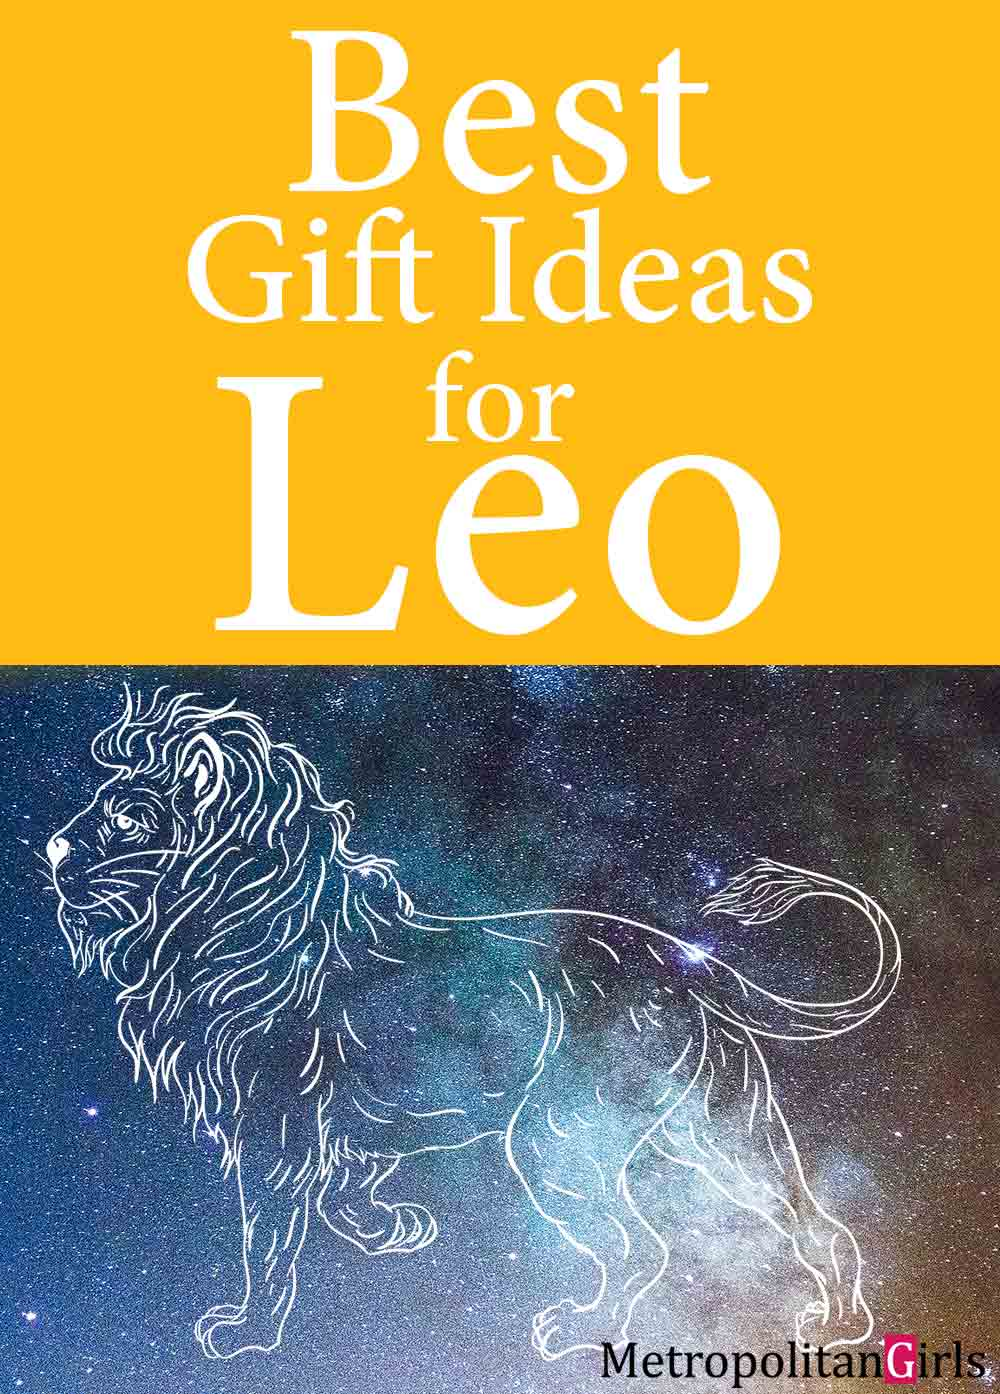 gift-ideas-for-leo